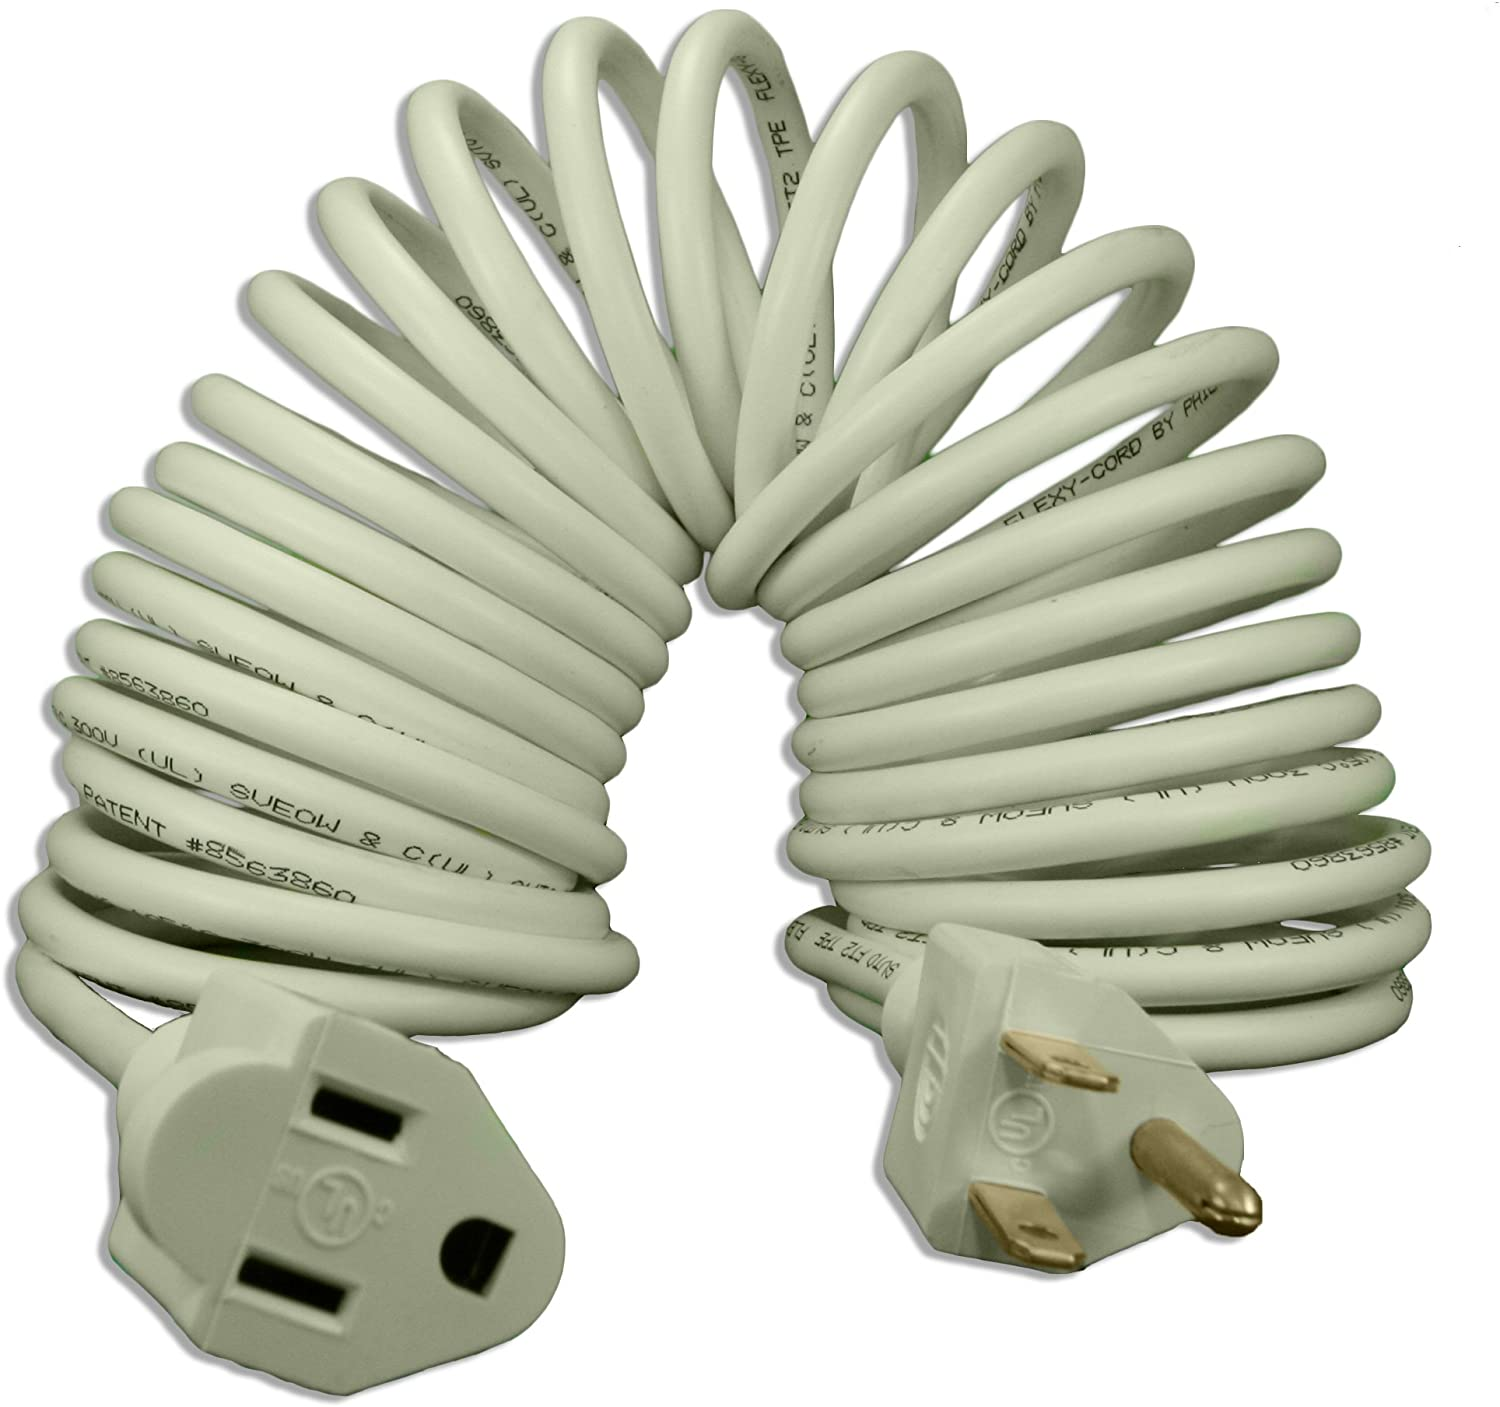 Flexy Coiled Extension Cord 18 Gauge 10 Amps - Extends From 7 In. To 15 Ft.